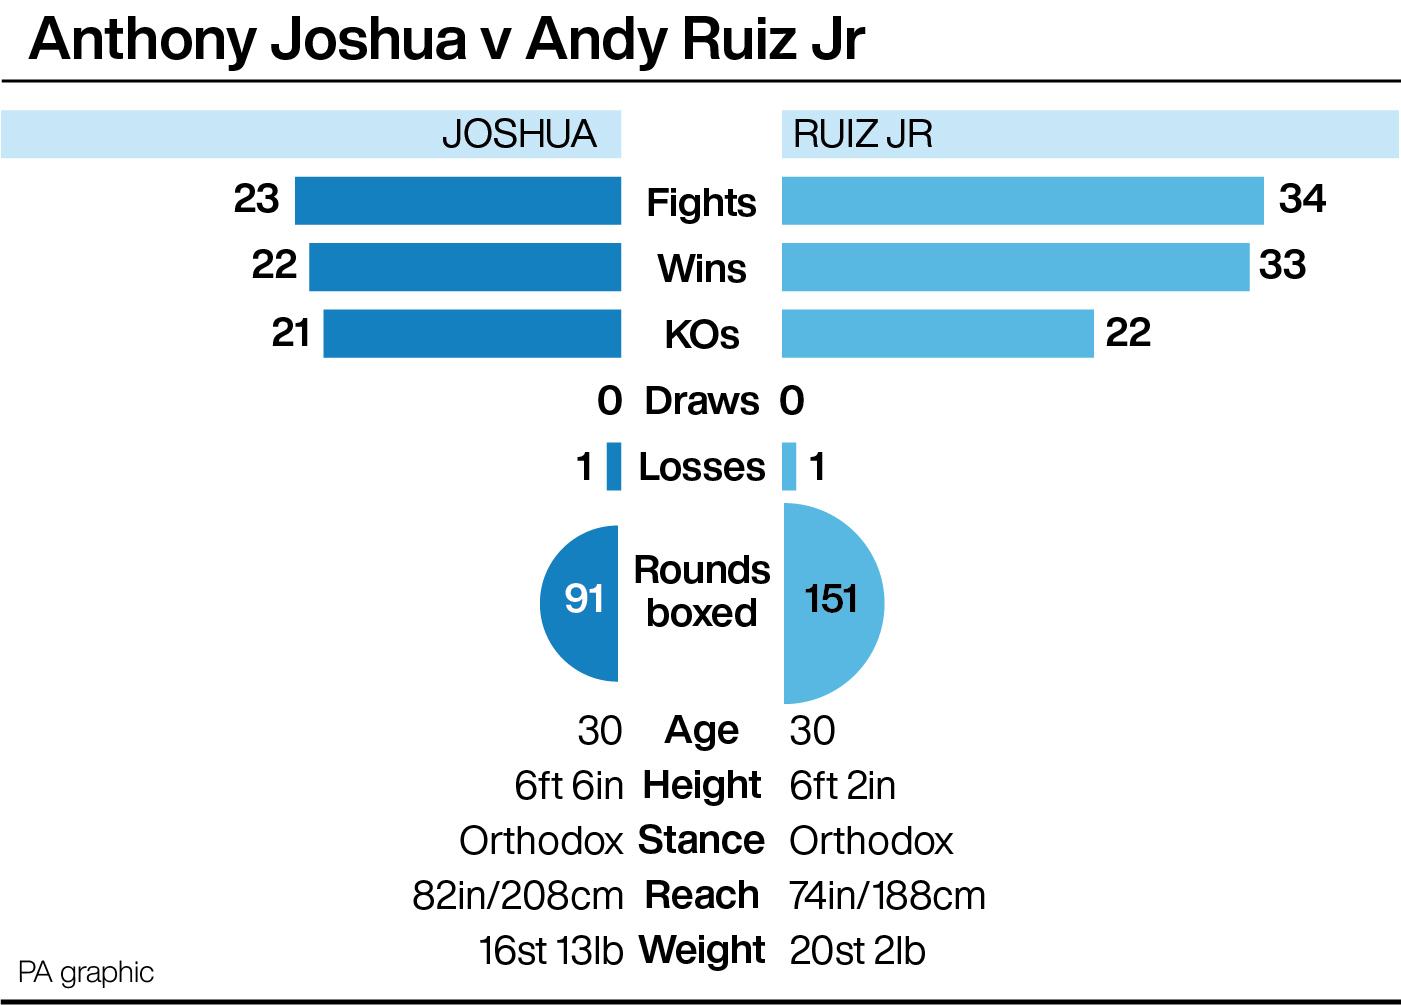 Anthony Joshua v Andy Ruiz Jr tale of the tape